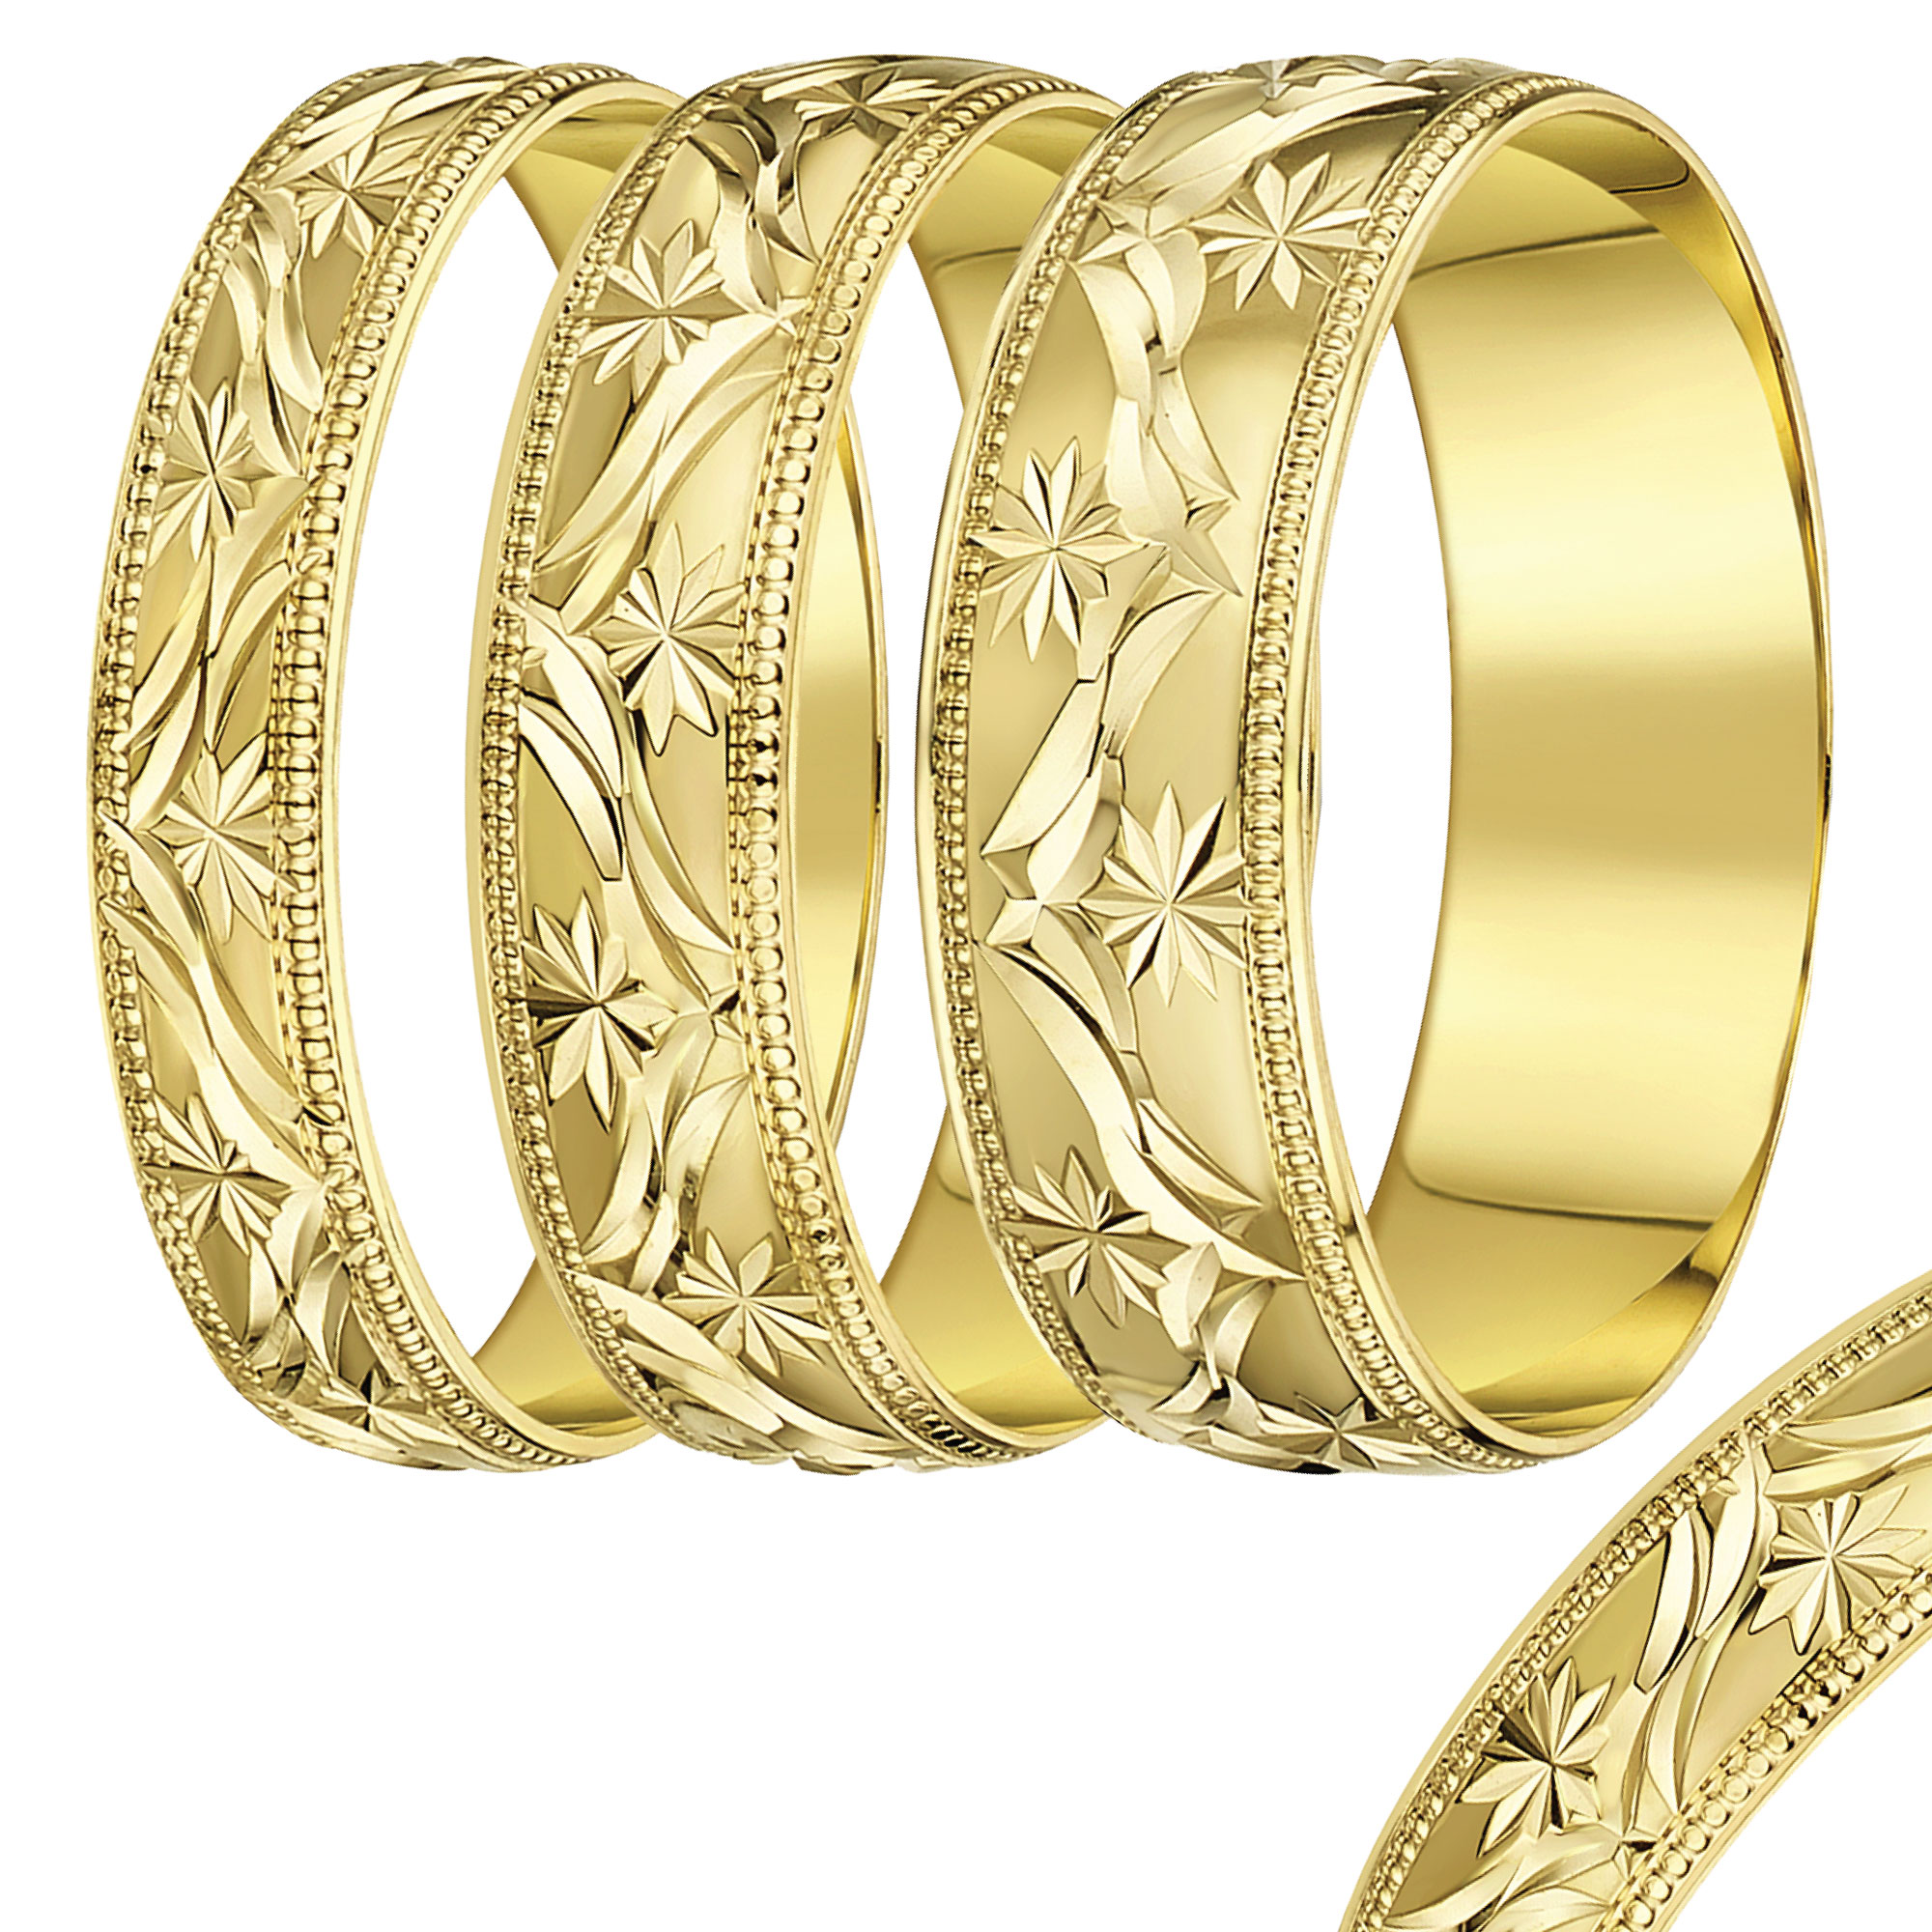 rings the ring of f when keeps gold who yellow beautiful la s inspirational patterned is images called band wedding